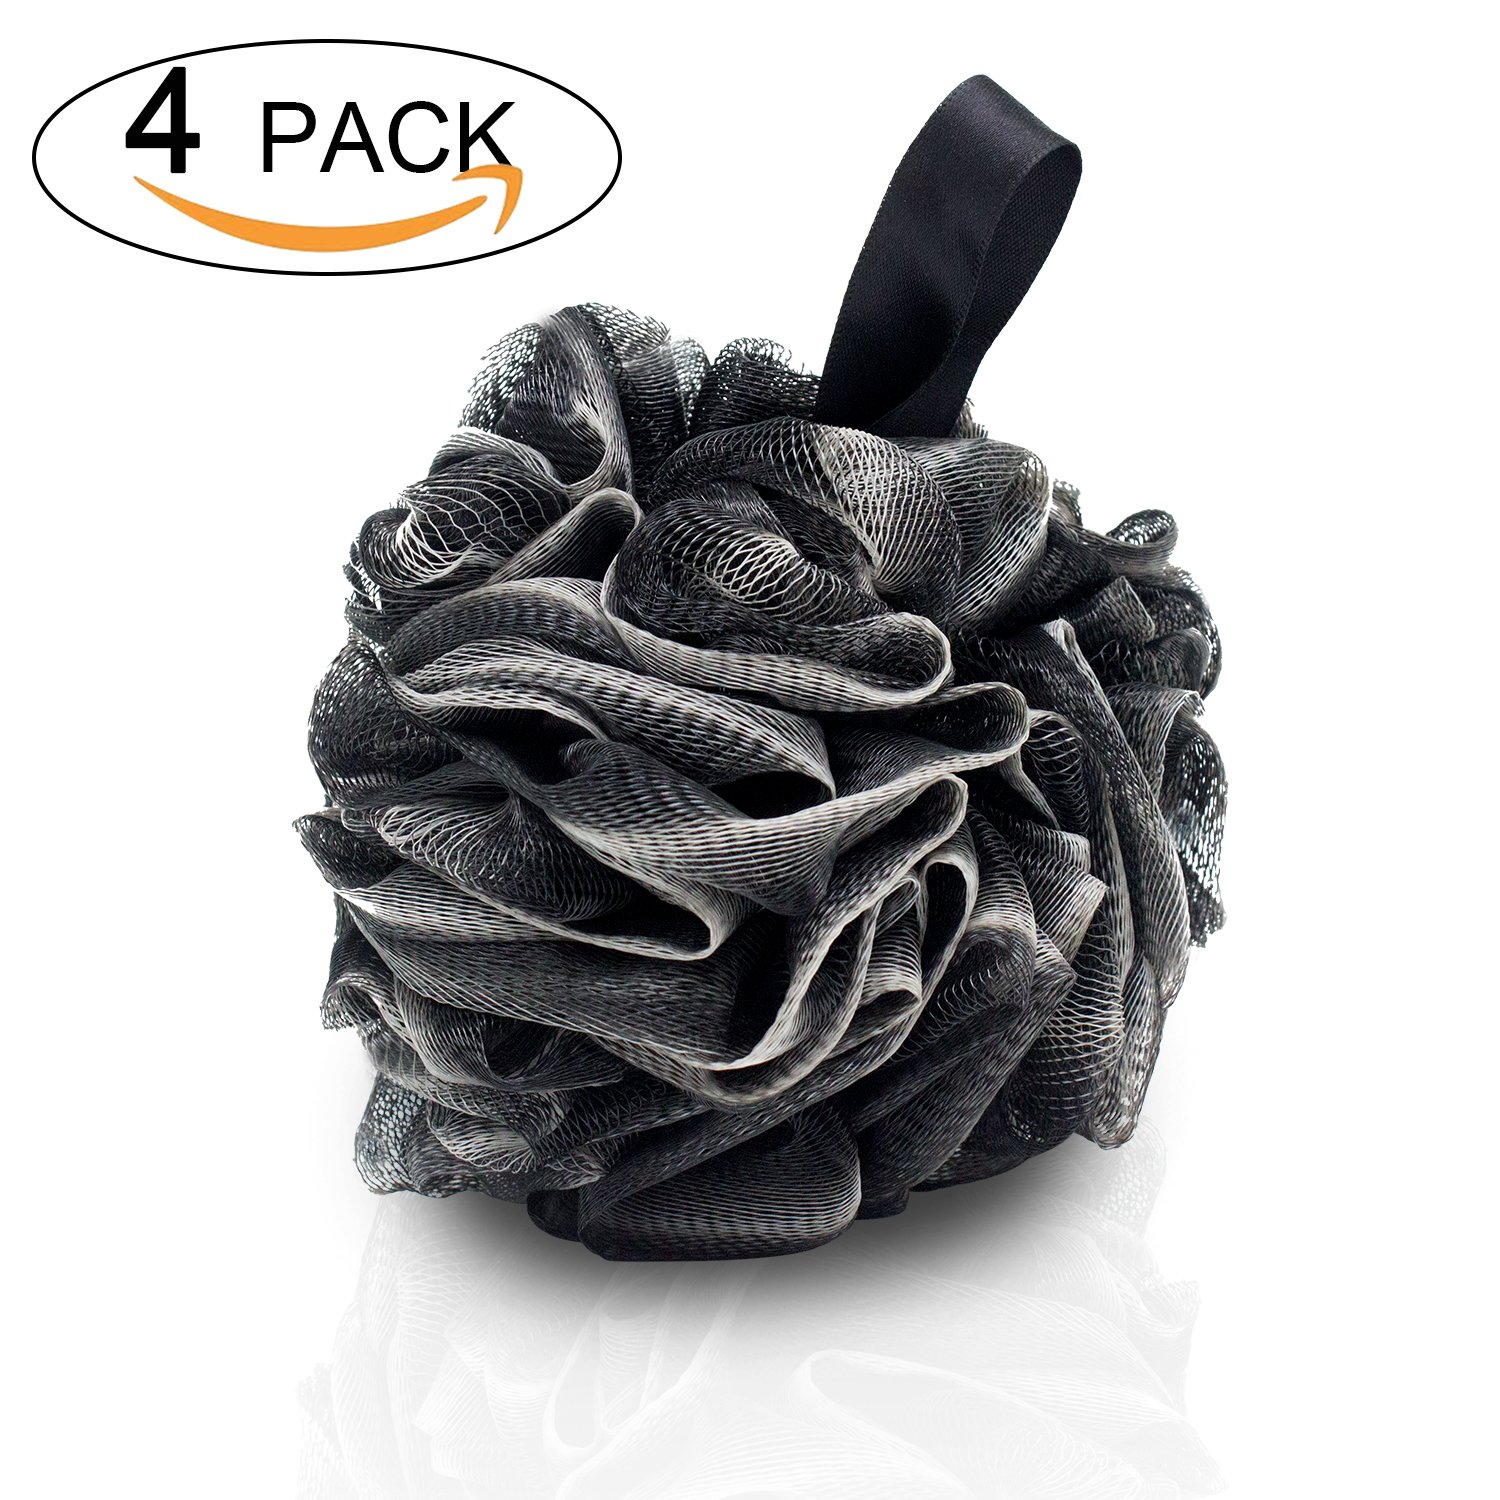 4 Packs Large Bath Loofahs-Eco-friendly Carbonized Bamboo Bath Shower Sponge Mesh Pouf Loofahs Shower Ball Loofahs Bath Sponge-Exfoliate,Cleanse,Soothe Skin (60g/pcs) sz